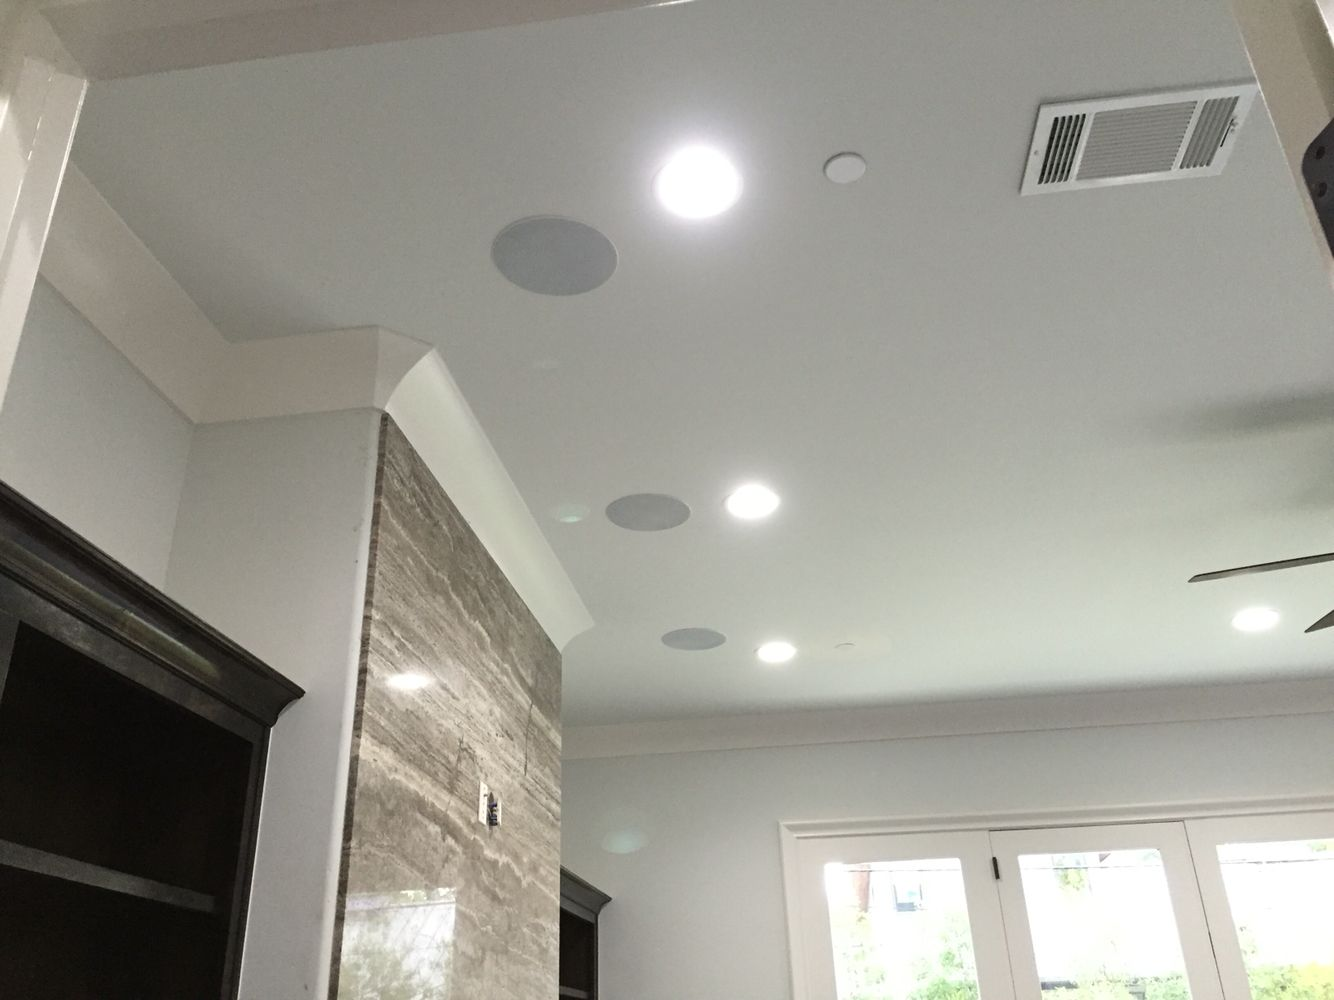 In Ceiling Speakers For A 5 1 Surround System Surround Sound